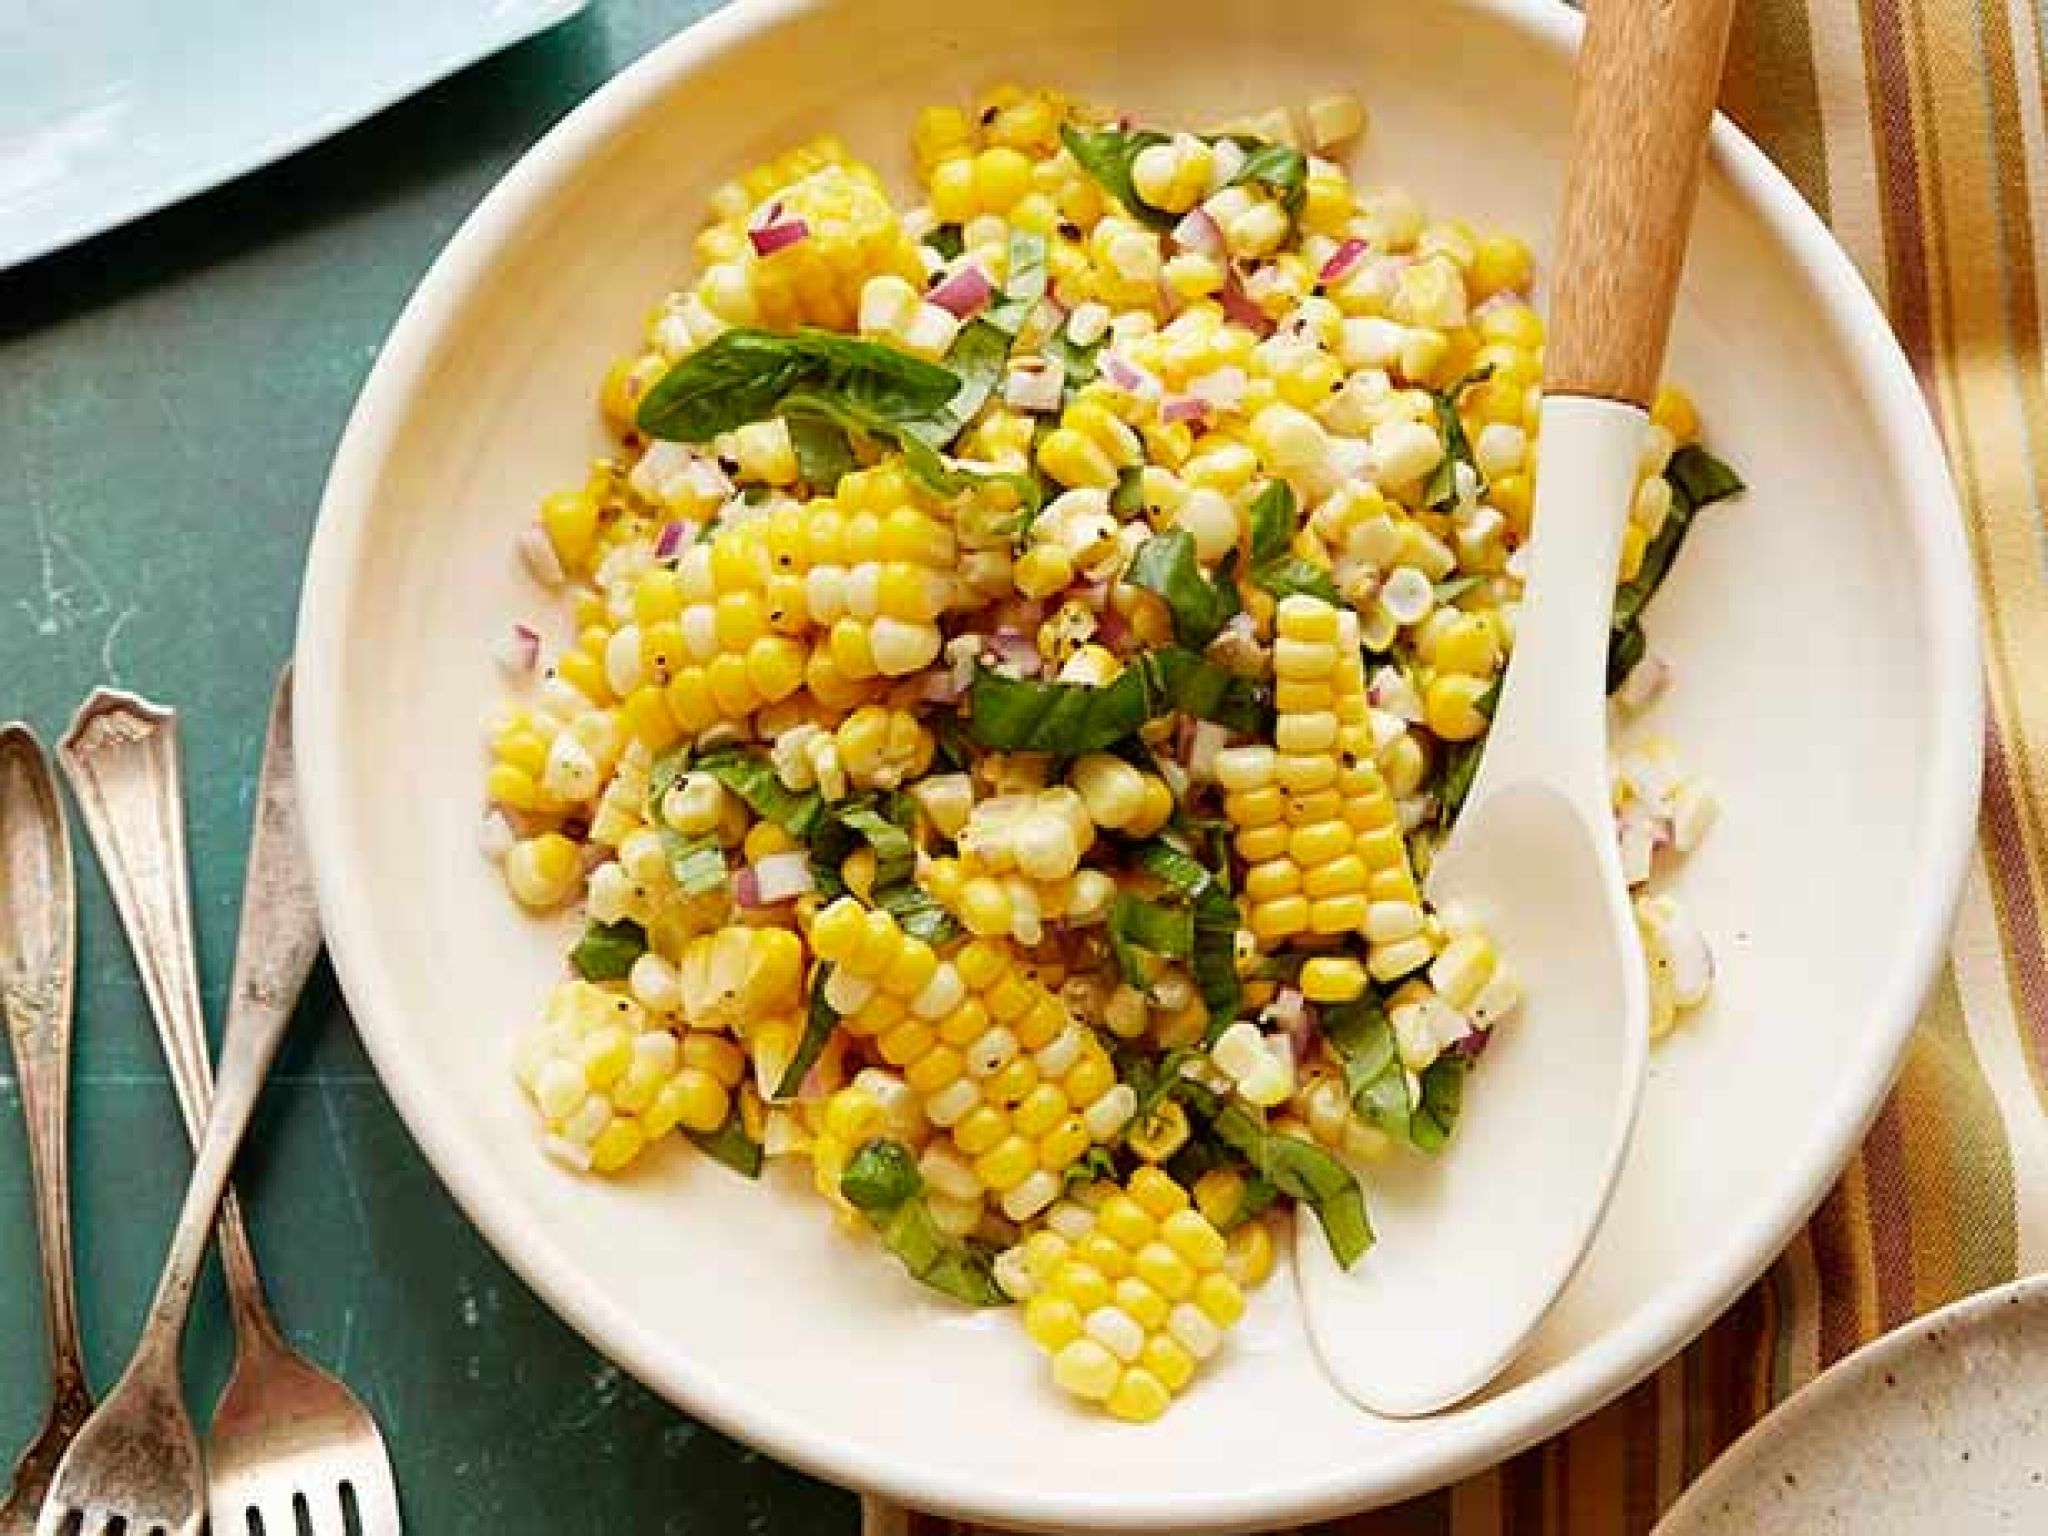 fresh corn salad : ina loves to make this easy fresh corn salad